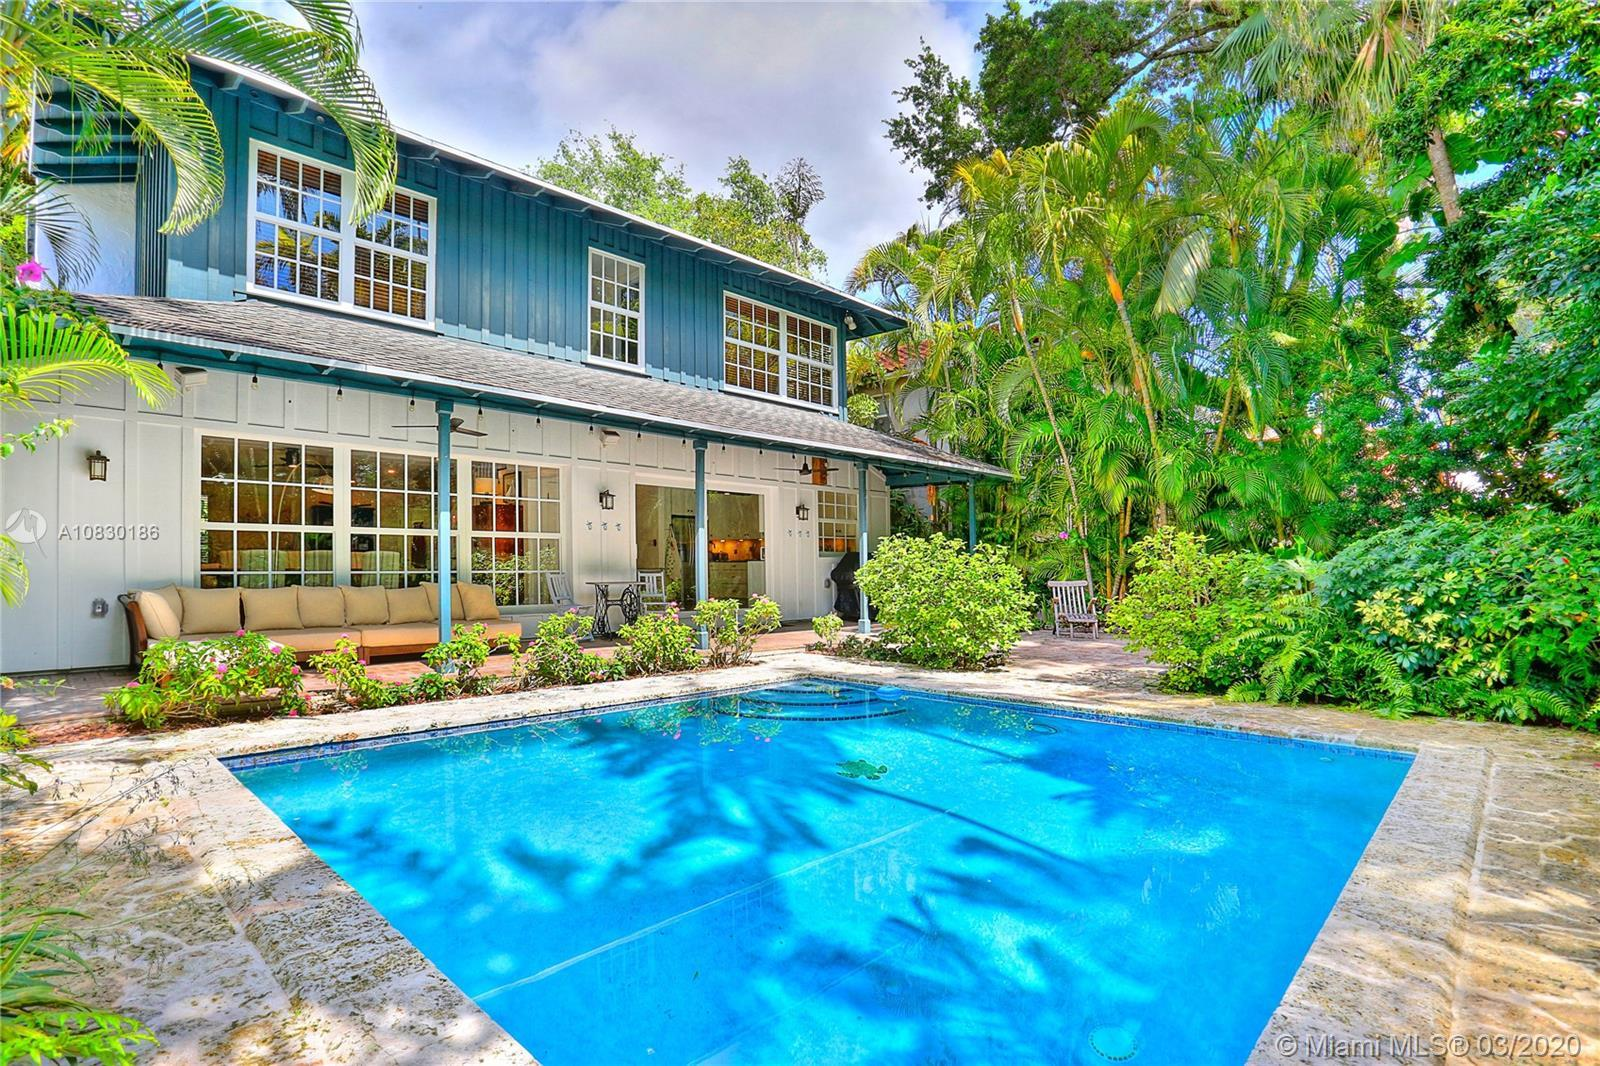 Welcome to this tropical home located in the desirable South Coconut Grove neighborhood. This very p